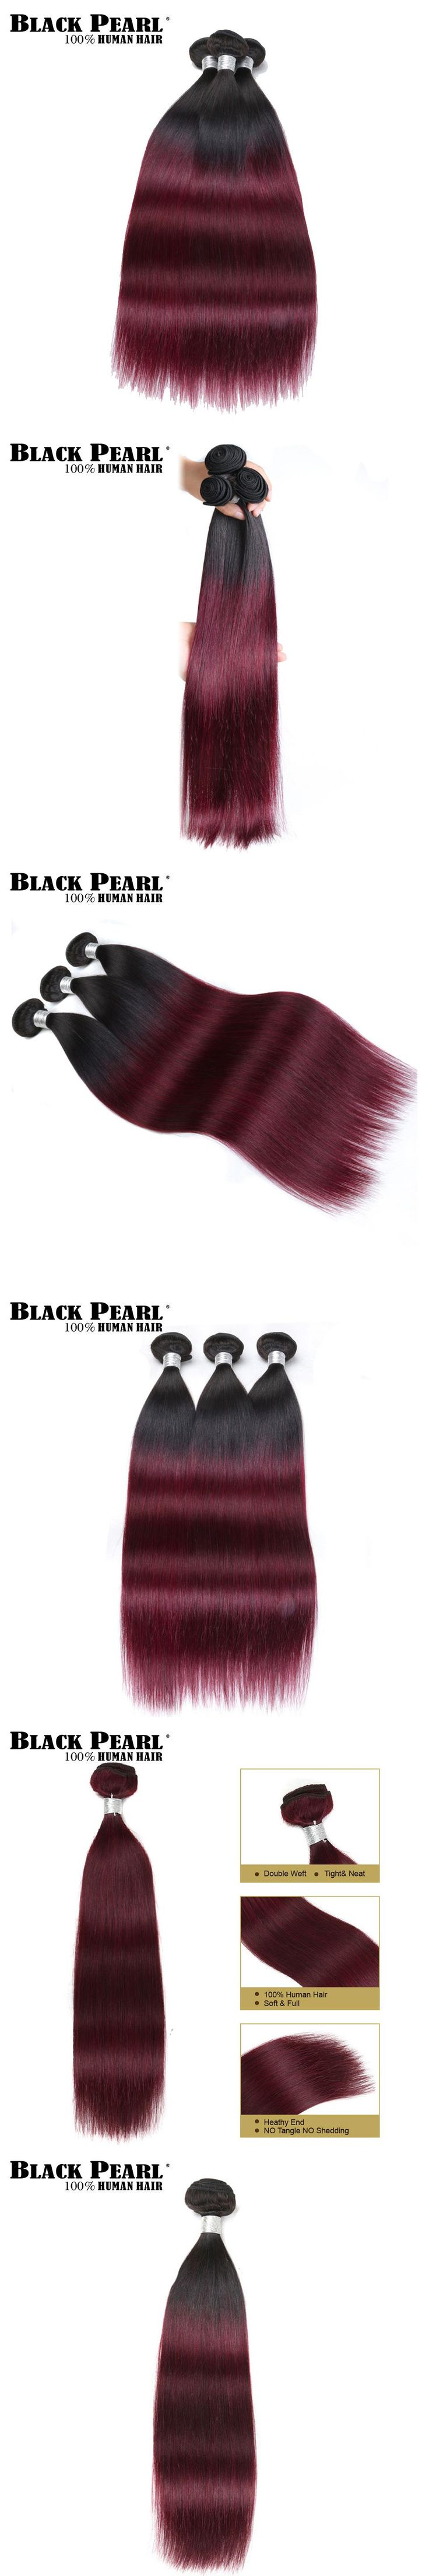 Black Pearl Pre-Colored Remy Straight Human Hair Bundles 1PC Ombre Wine Red Hair Extensions Brazlian Hair Weave Bundles T1b30